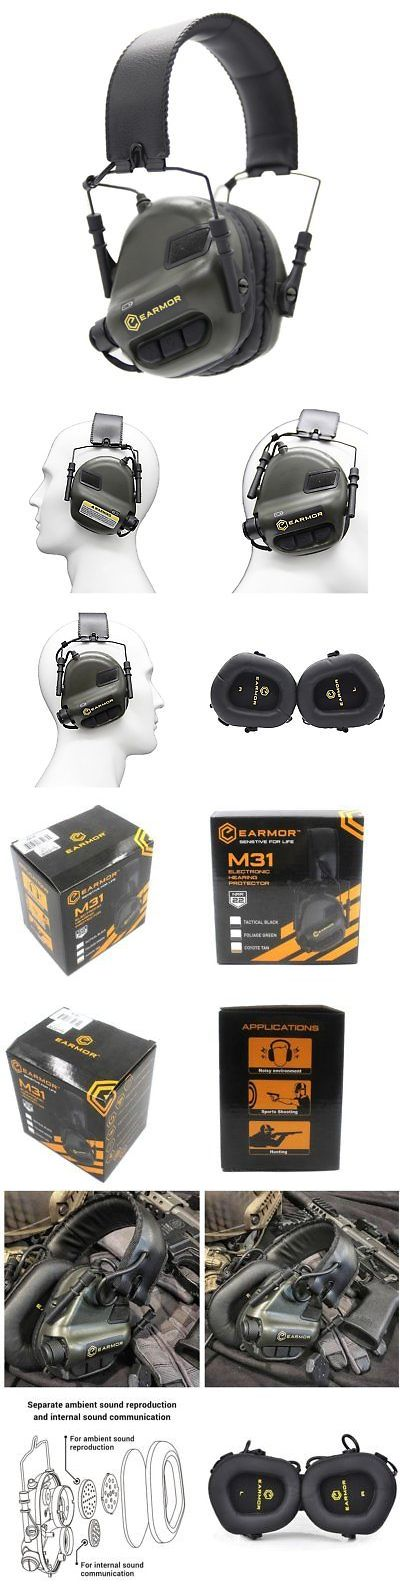 Hearing Protection 73942: Opsmen M31-V2 Sound Amplification Gun Shooting Noise Canceling Hearing Earmuff -> BUY IT NOW ONLY: $32.12 on eBay!